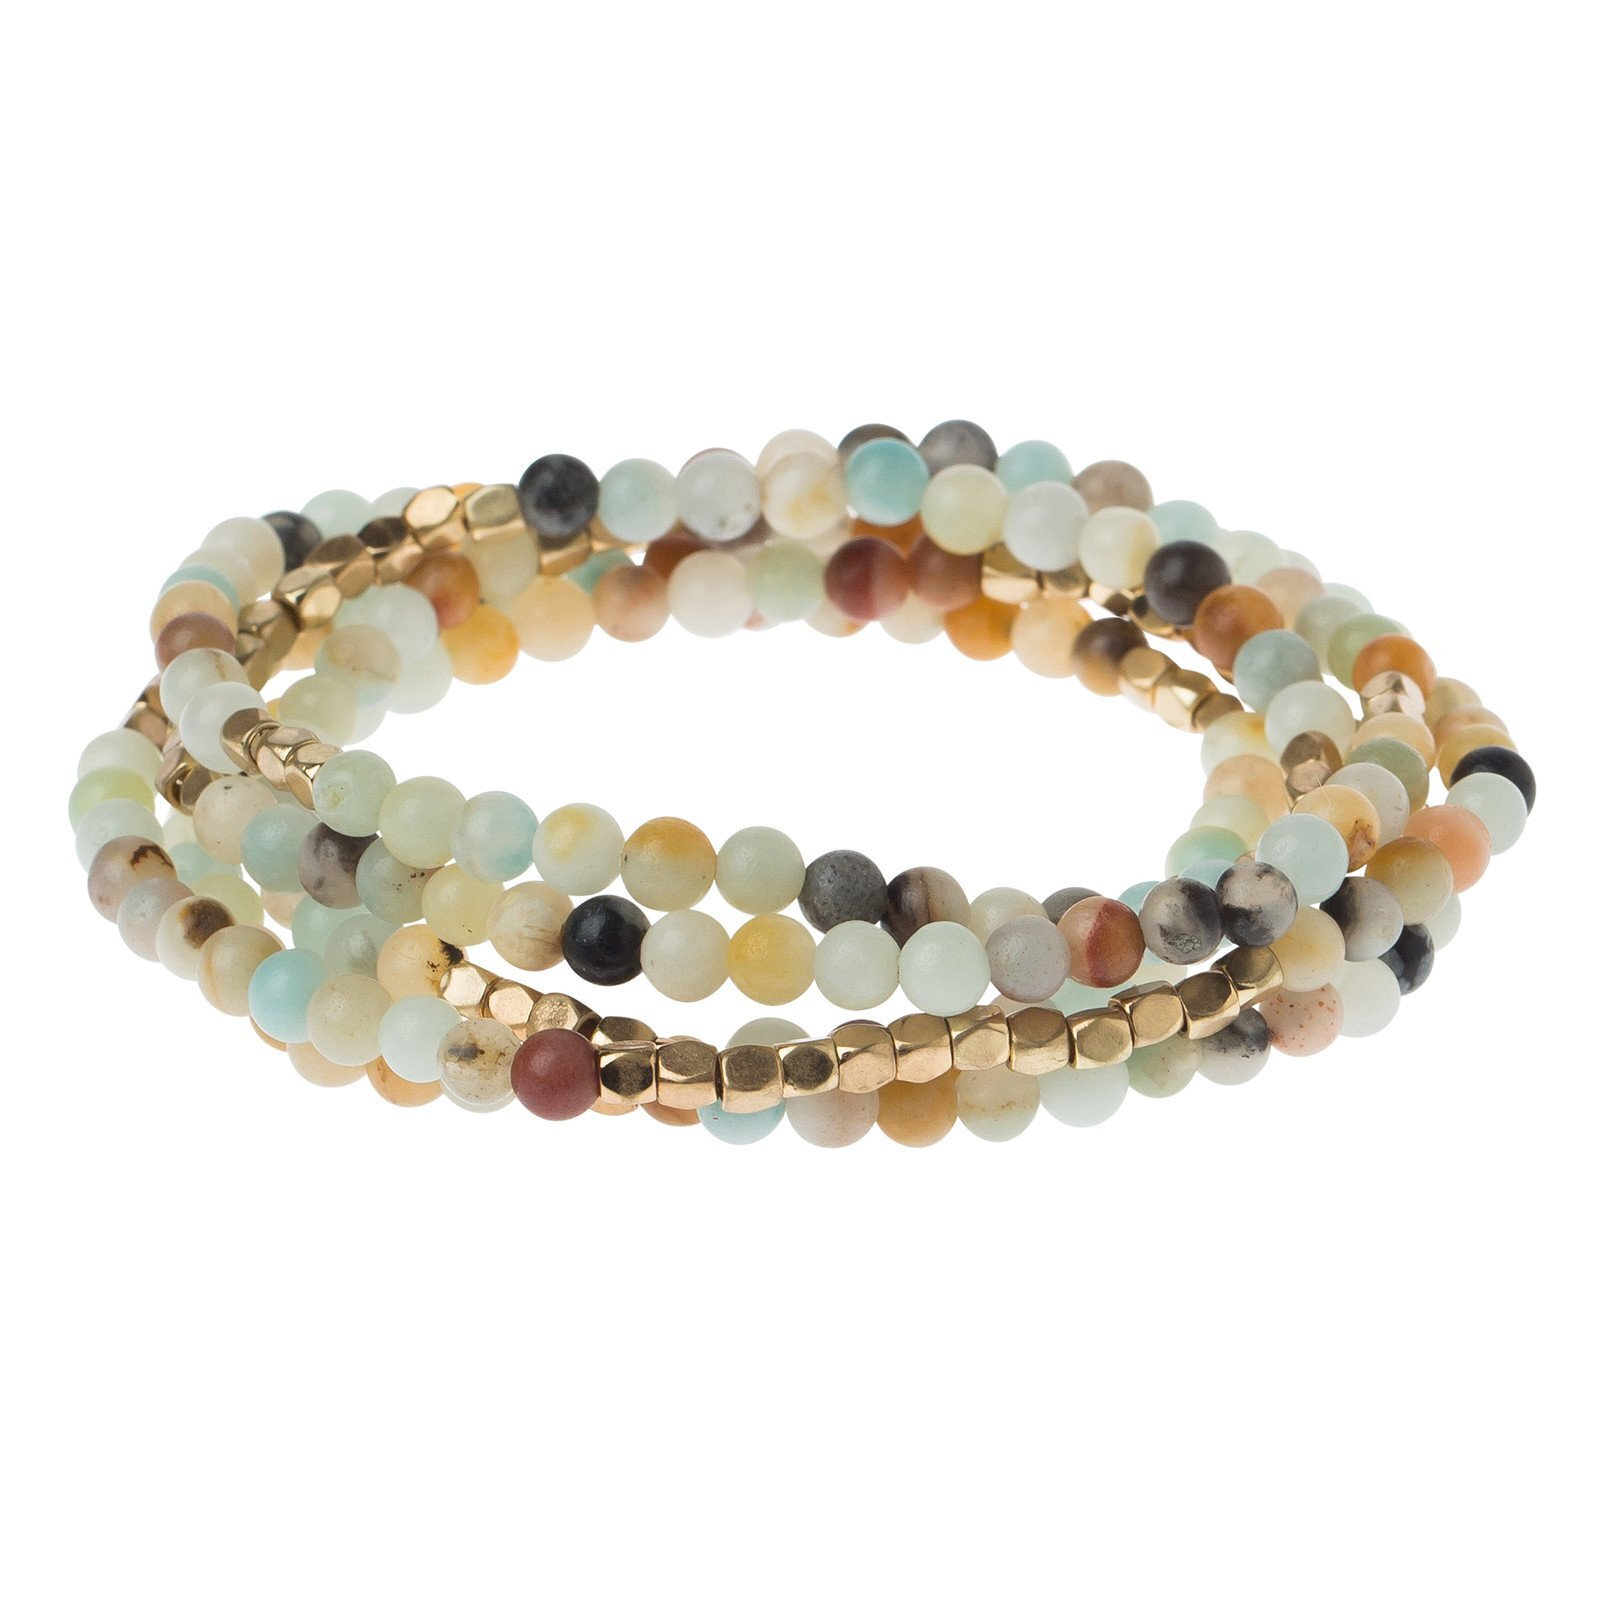 Stone of Courage - Amazonite  Reflects boldness. Soothes the spirit and calms the soul. Enhances communication and harmonious interaction. Brings truth, honor, and integrity.